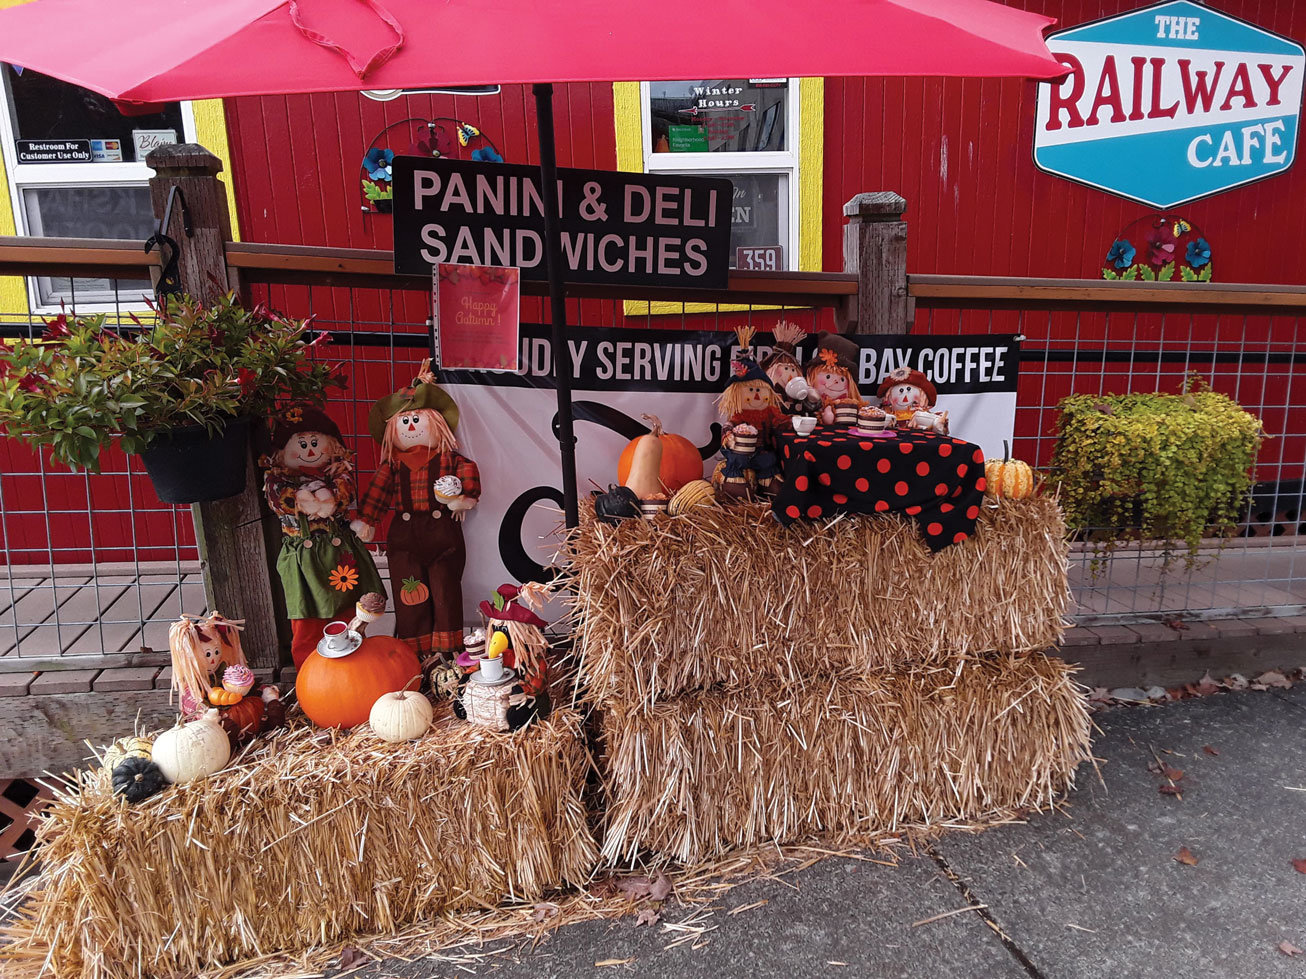 The Blaine Chamber of Commerce's 2020 fall display contest is coming up and entrants must have their displays ready by October 11 for a chance to win a prize. The Railway Cafe won last year's contest. Send a picture of your display to info@blainechamber.com to have it shared on Facebook. Learn more at blainechamber.com